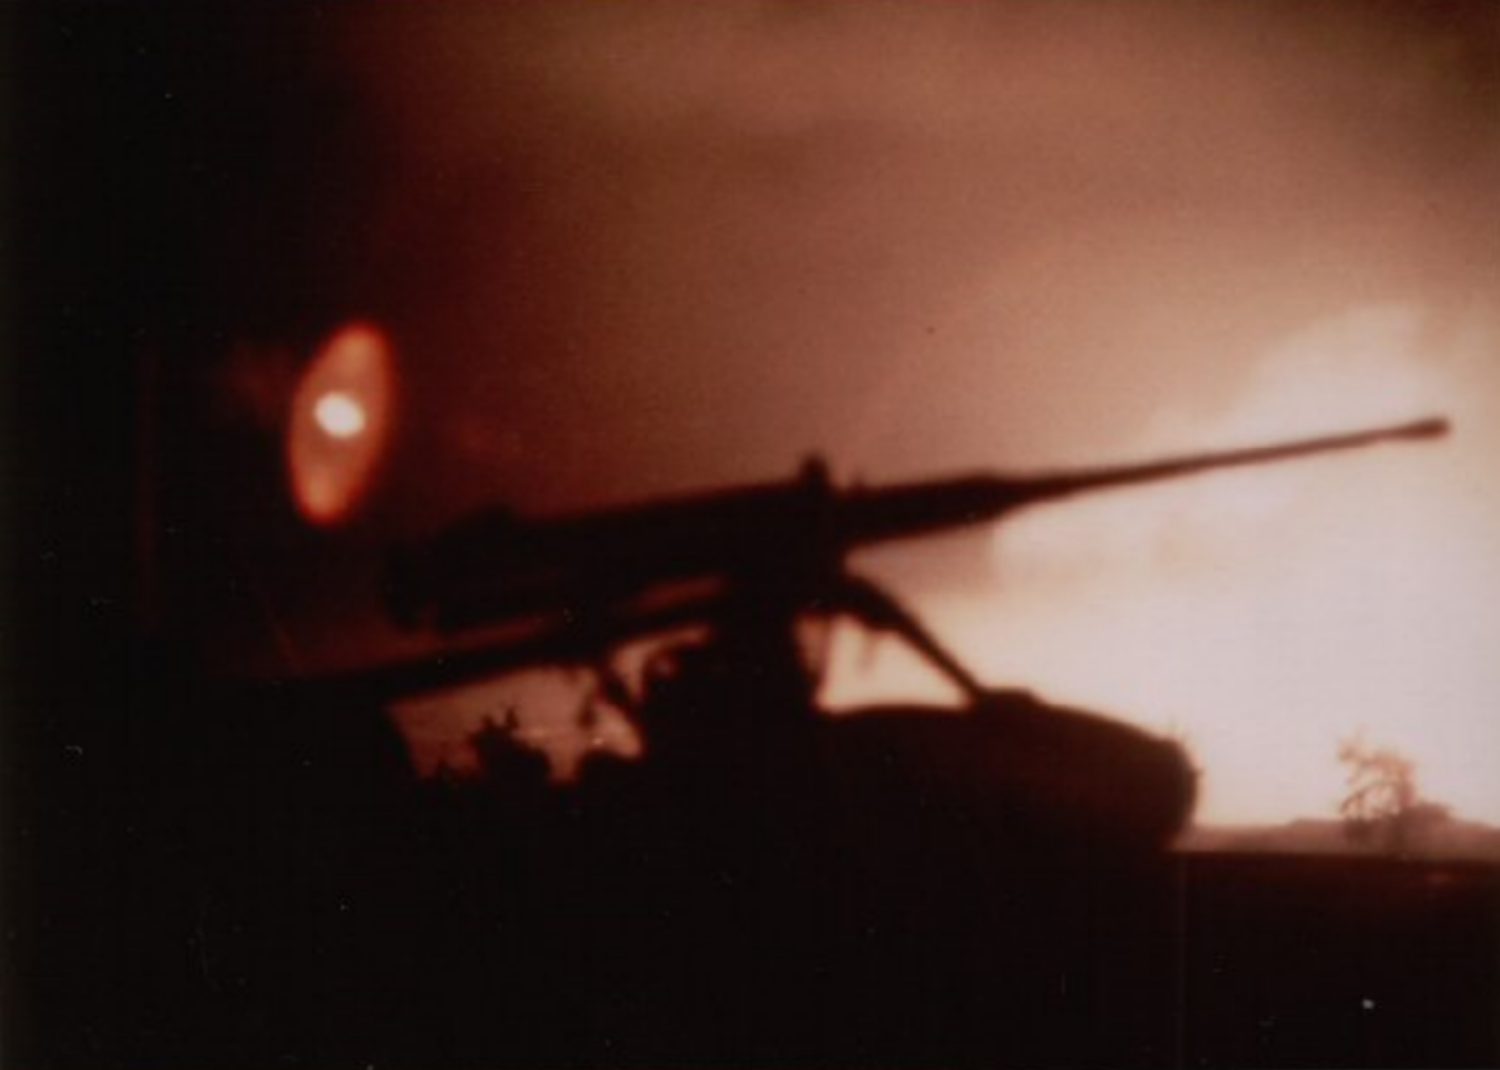 Early morning hours, Wednesday, January 31, 1968. The Tet Offensive has just been launched by 84,000 enemy soldiers. My first shots fired in combat were from this M2 .50